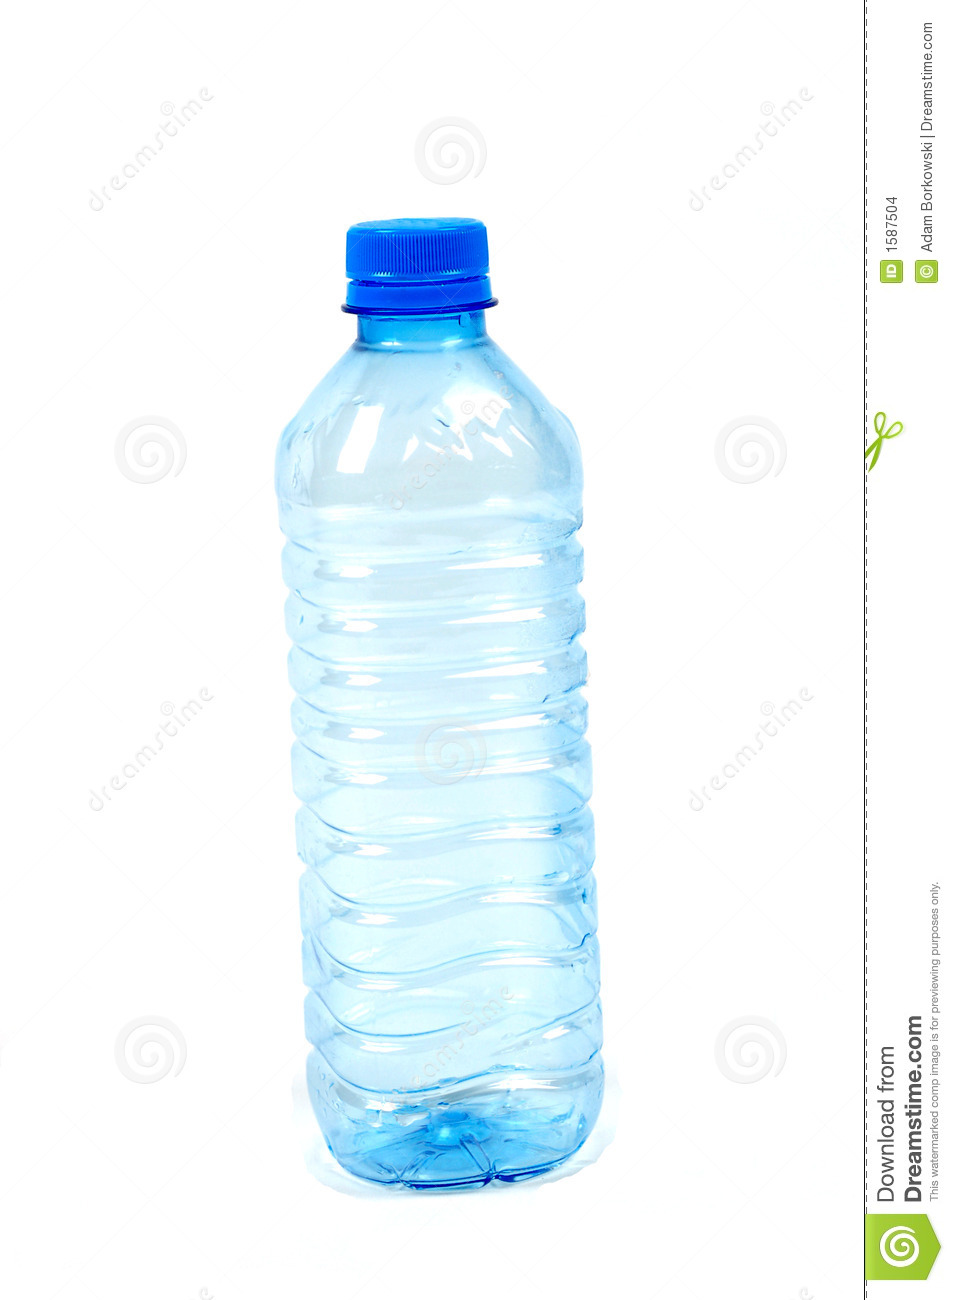 Empty Bottle Stock Images - Image: 1587504